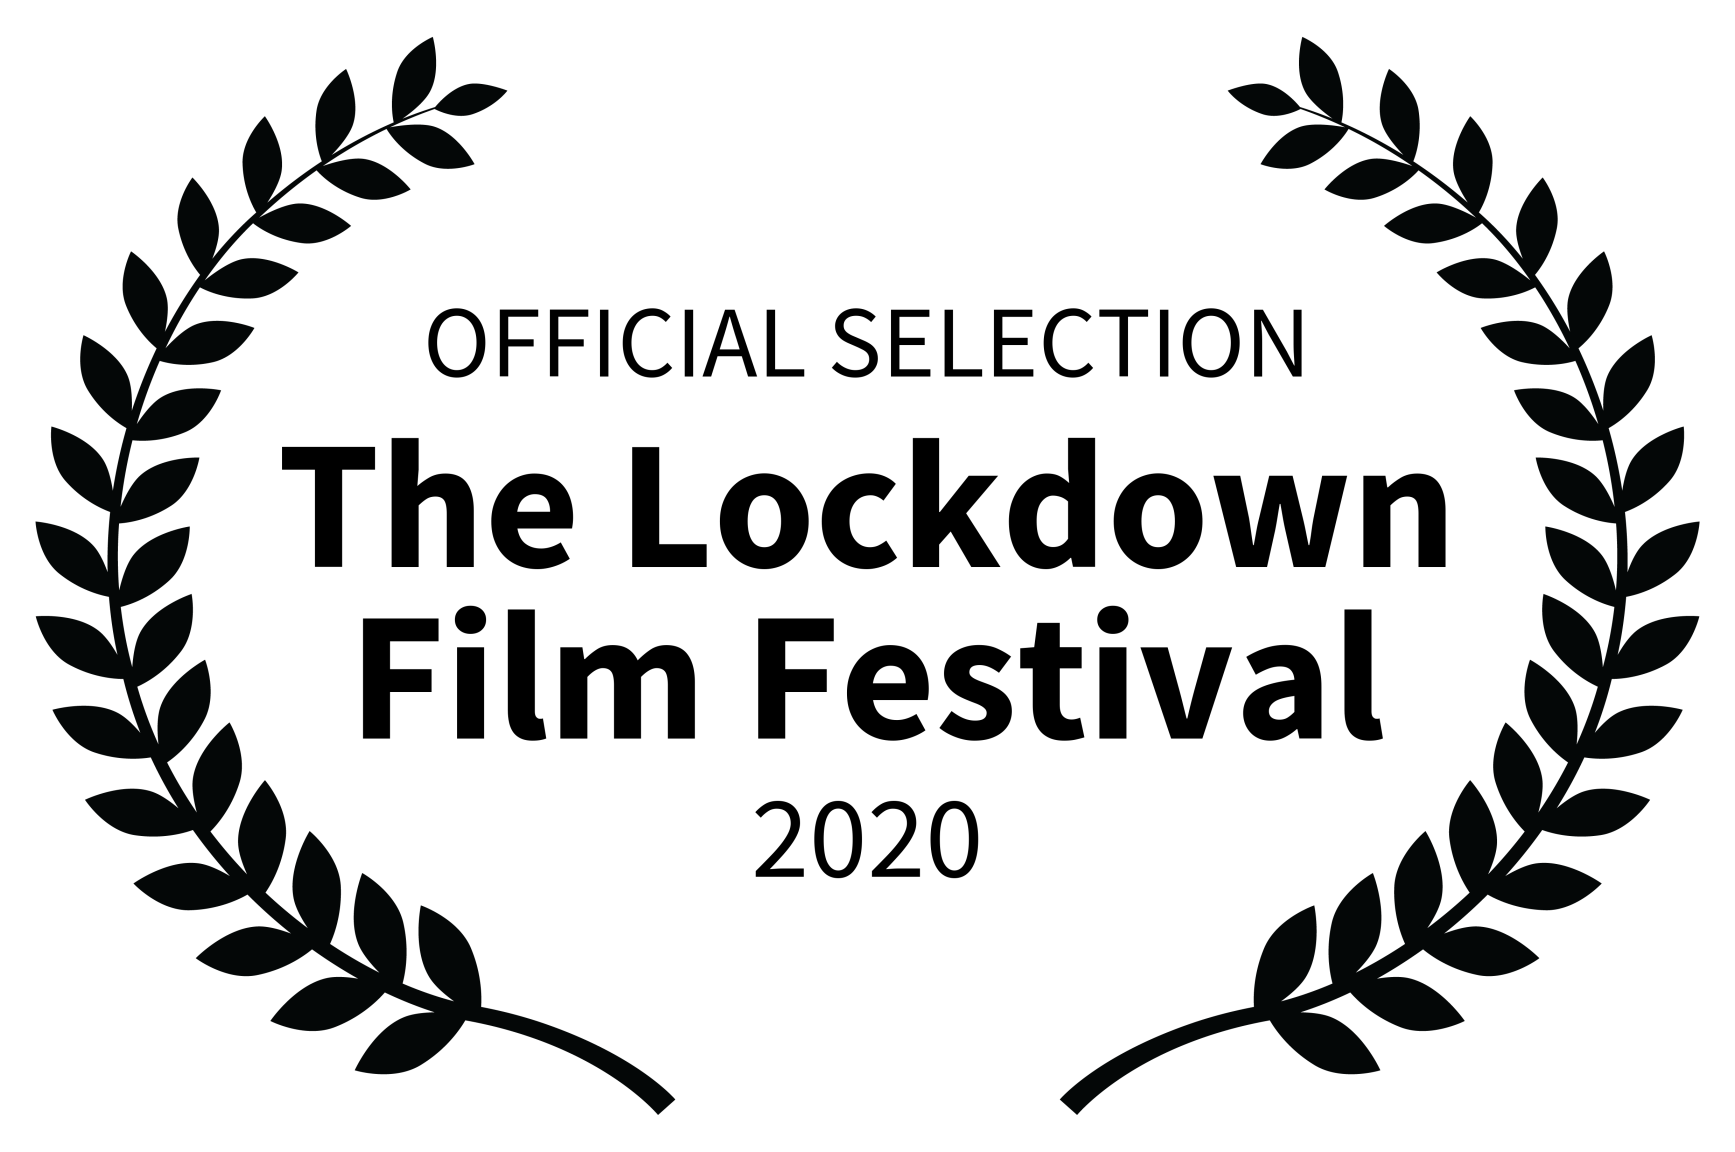 OFFICIAL SELECTION - The Lockdown Film Festival - 2020